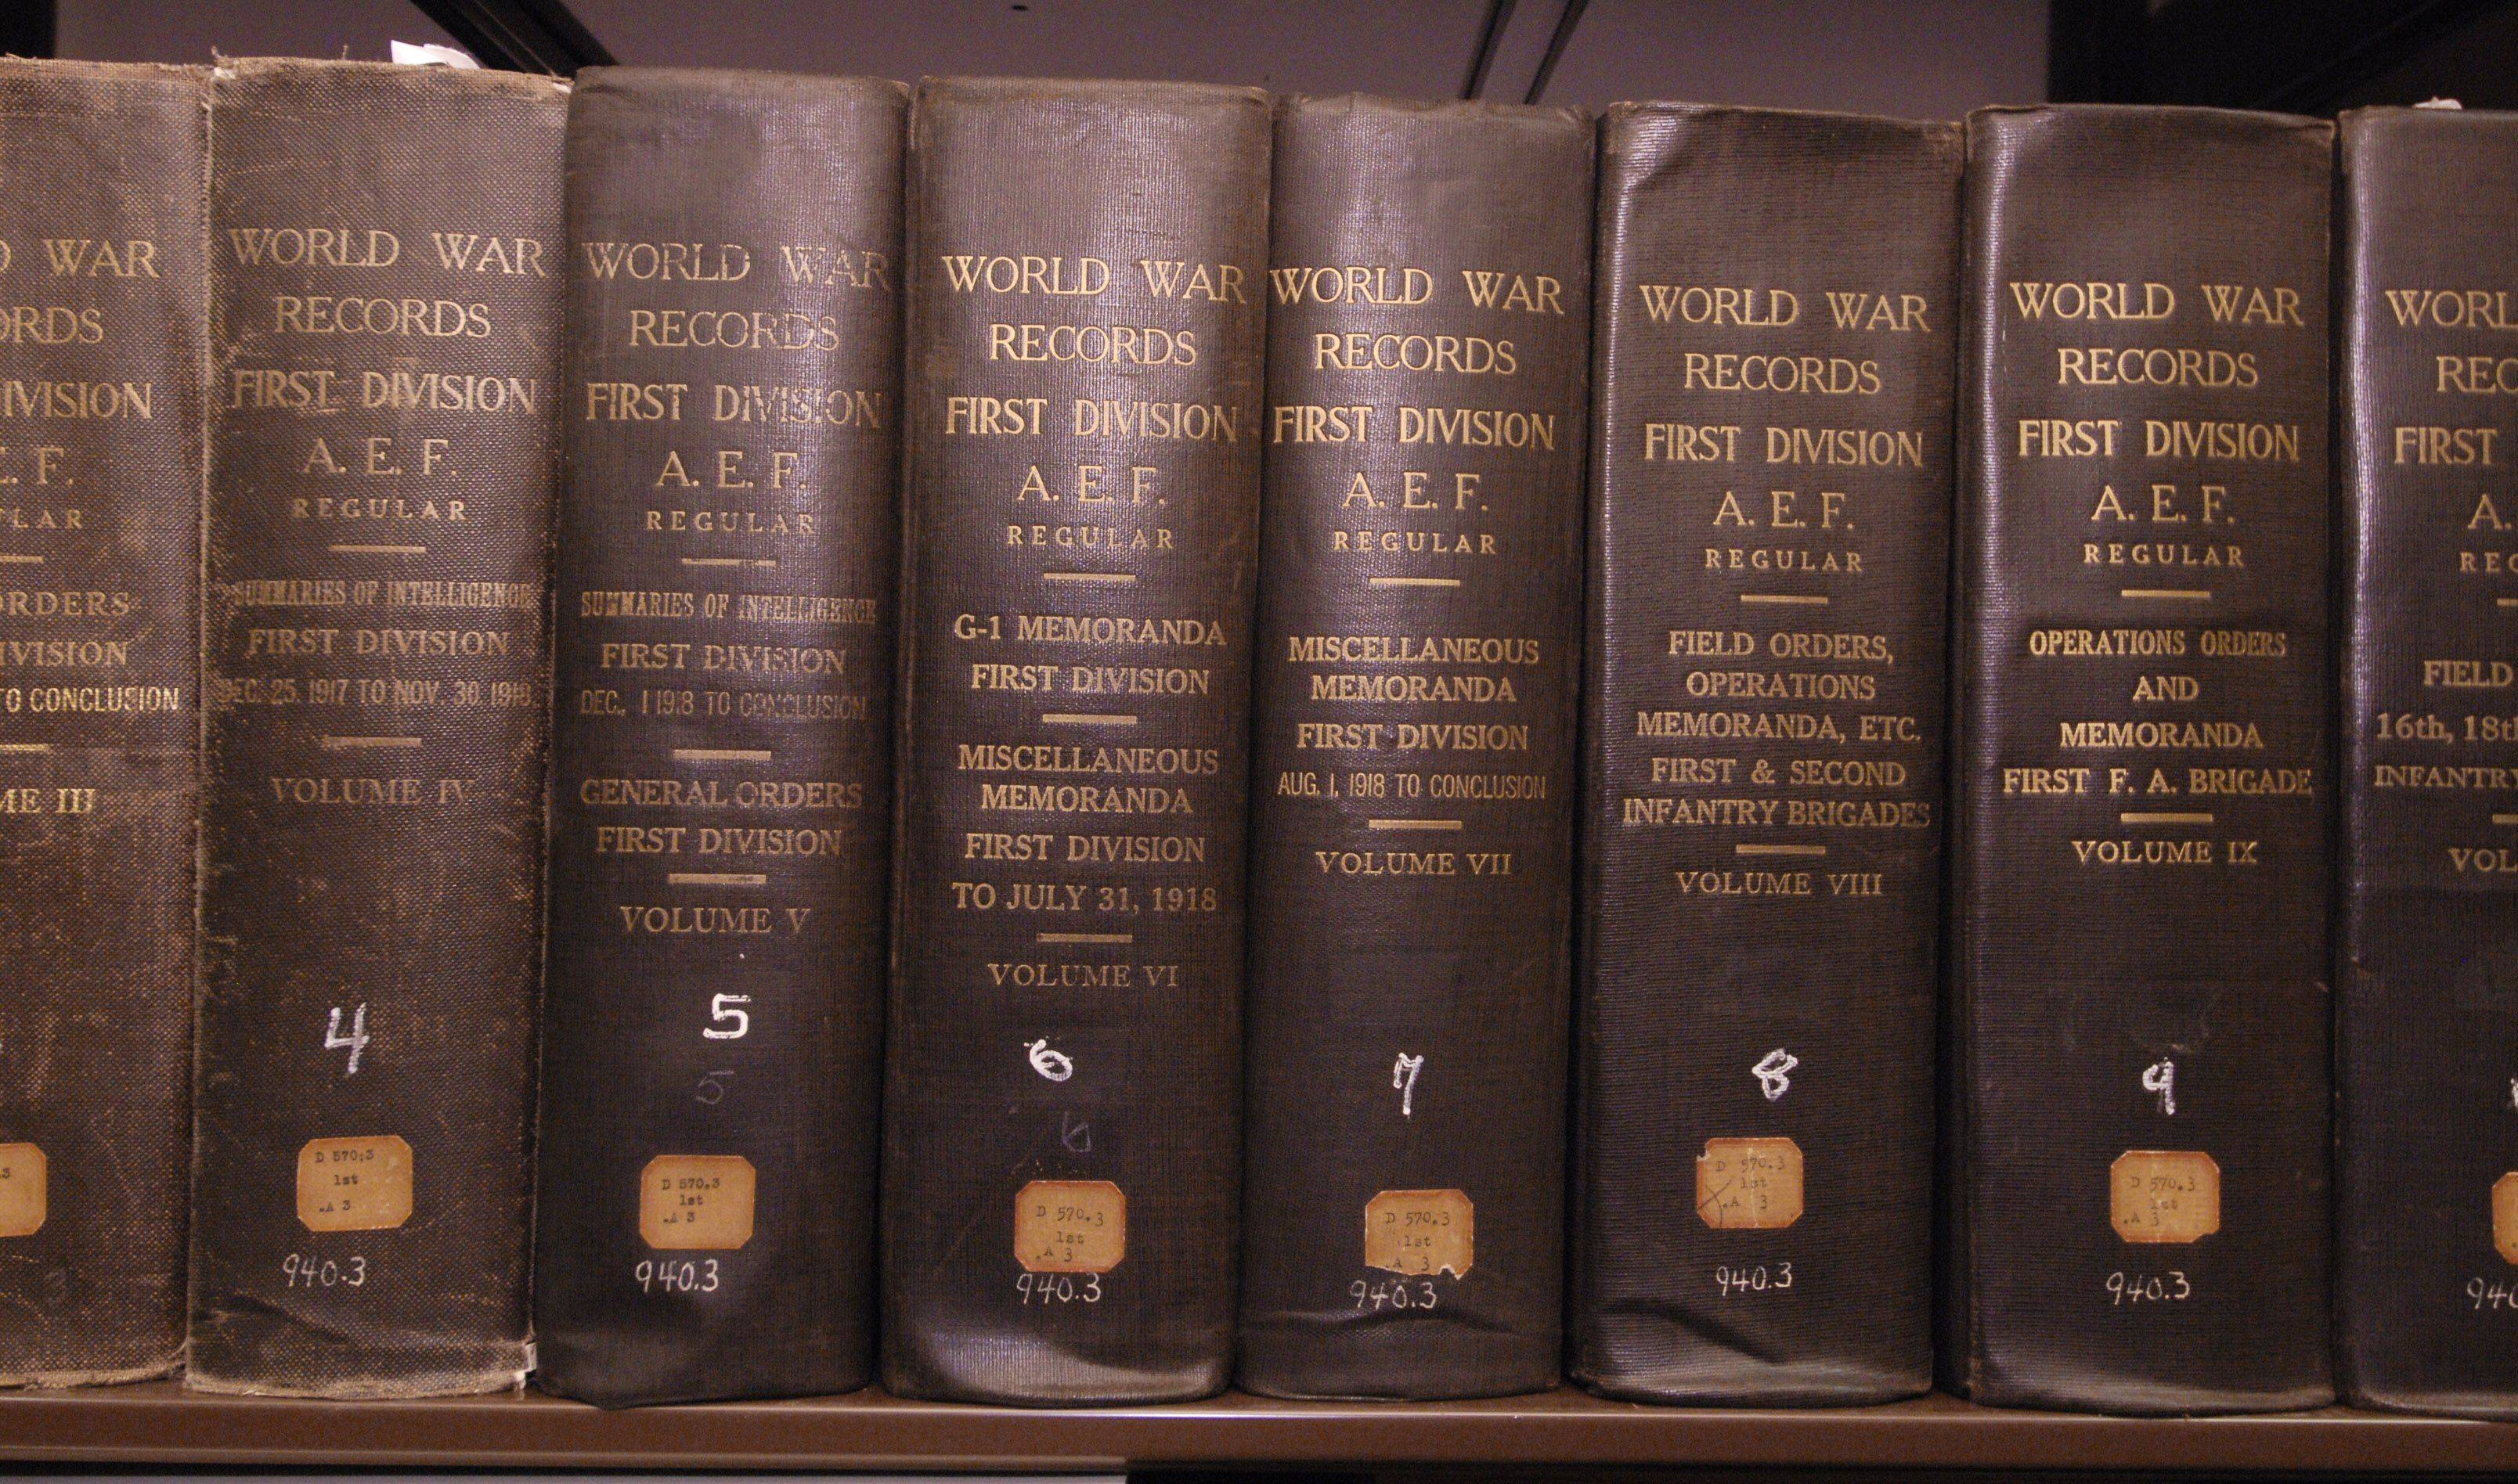 Some of the volumes of the official record of the 1st Divisions actions during World War I. The record consists of 29 volumes that were typed up following the end of the war.